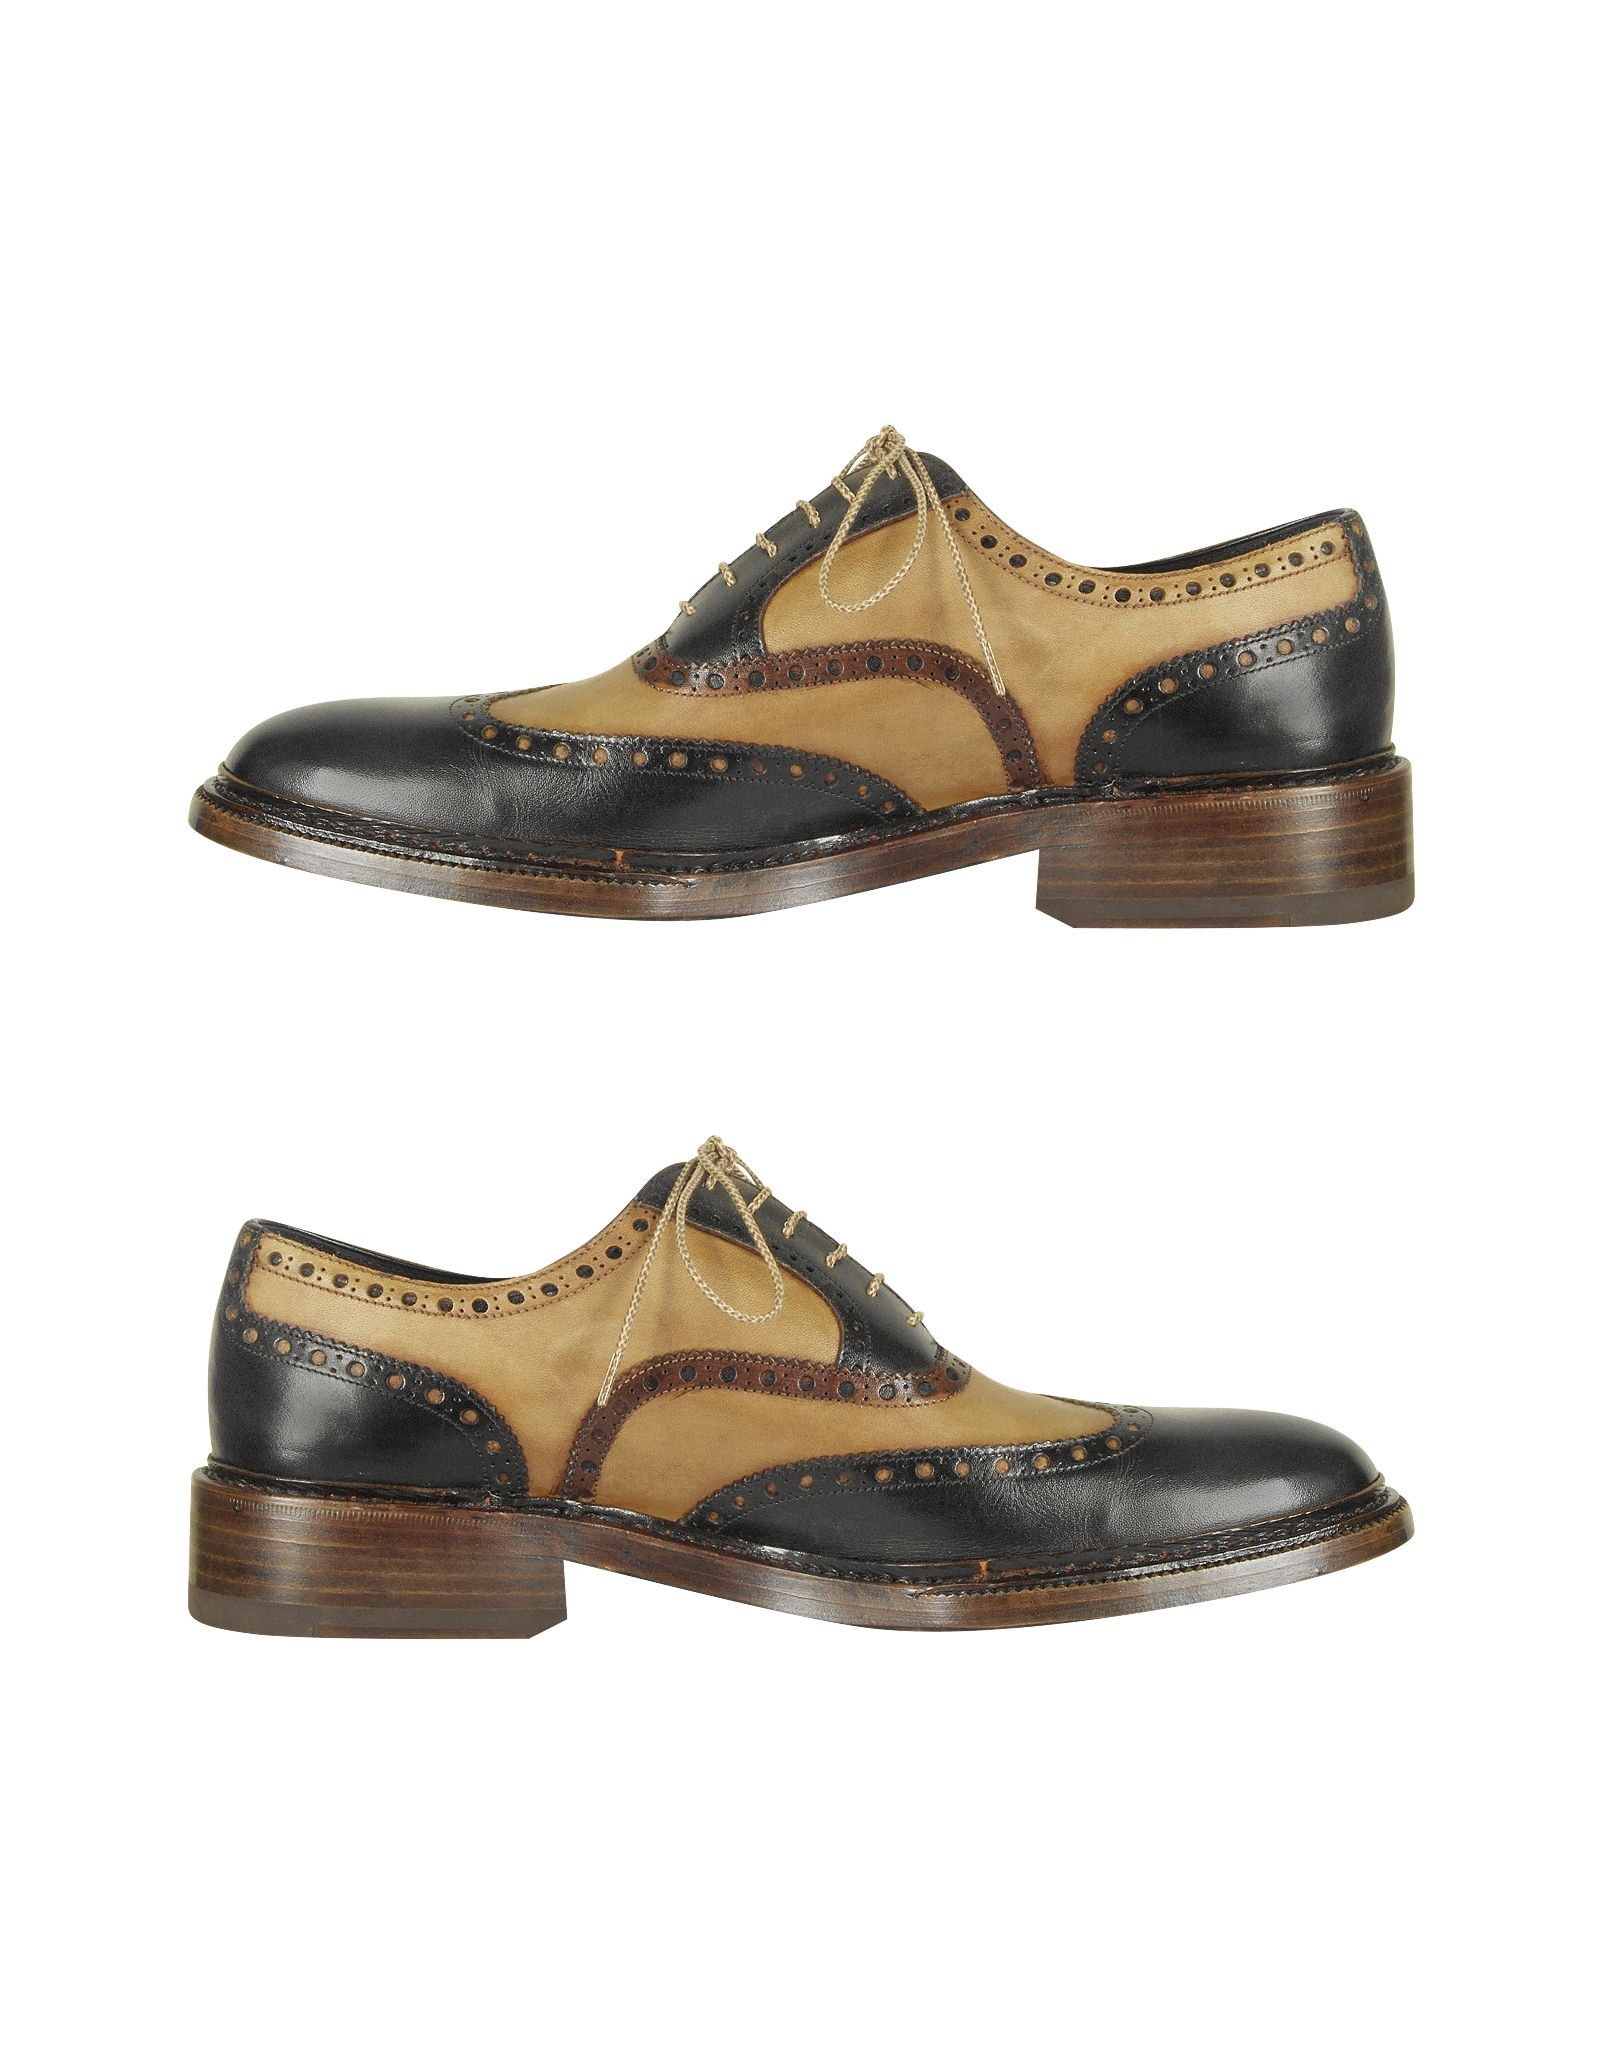 Forzieri Italian Handcrafted Two tone Wingtip Oxford Shoes